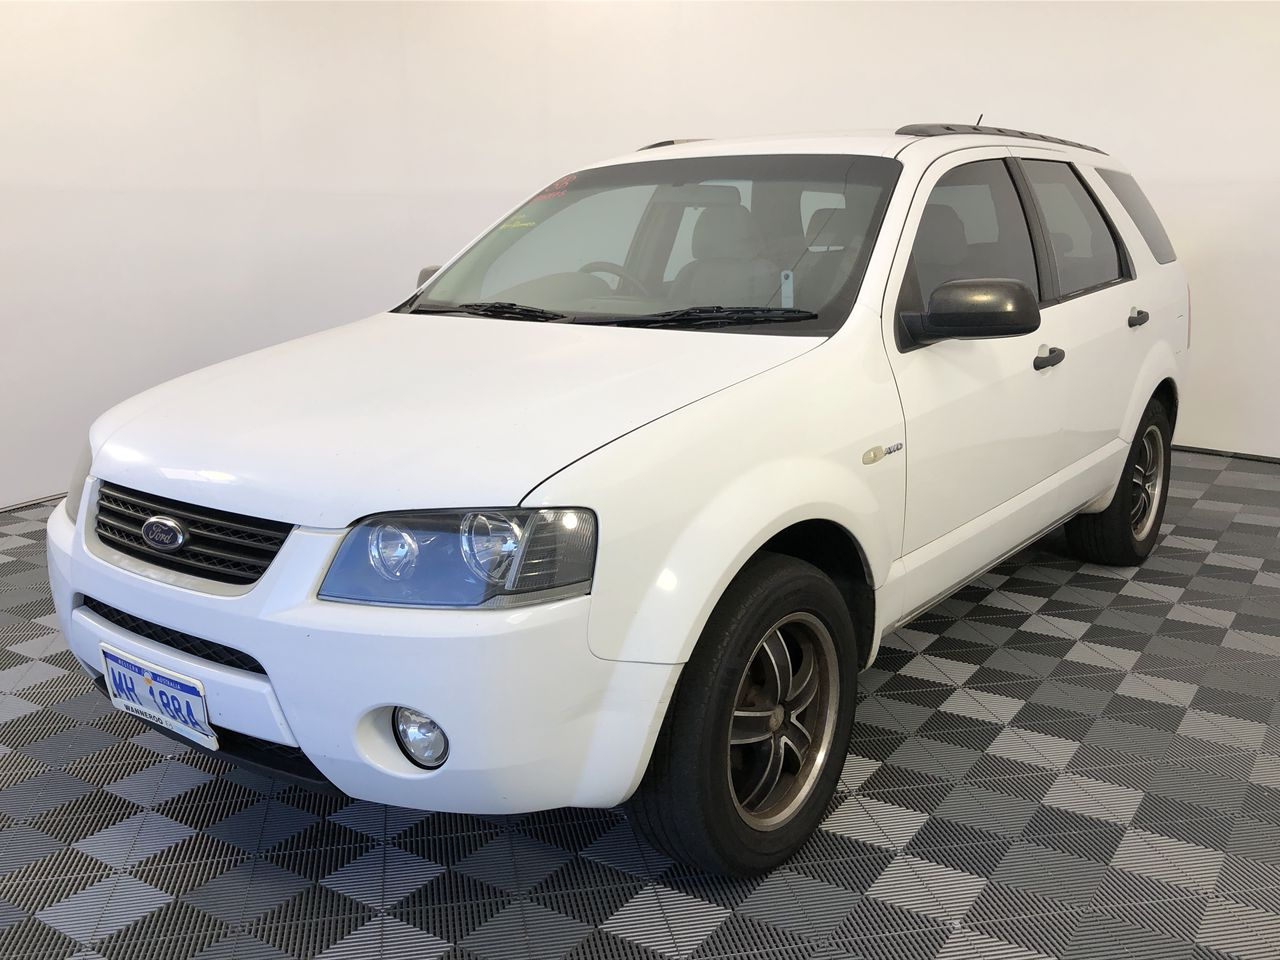 2007 Ford Territory TX (4x4) SY Automatic Wagon